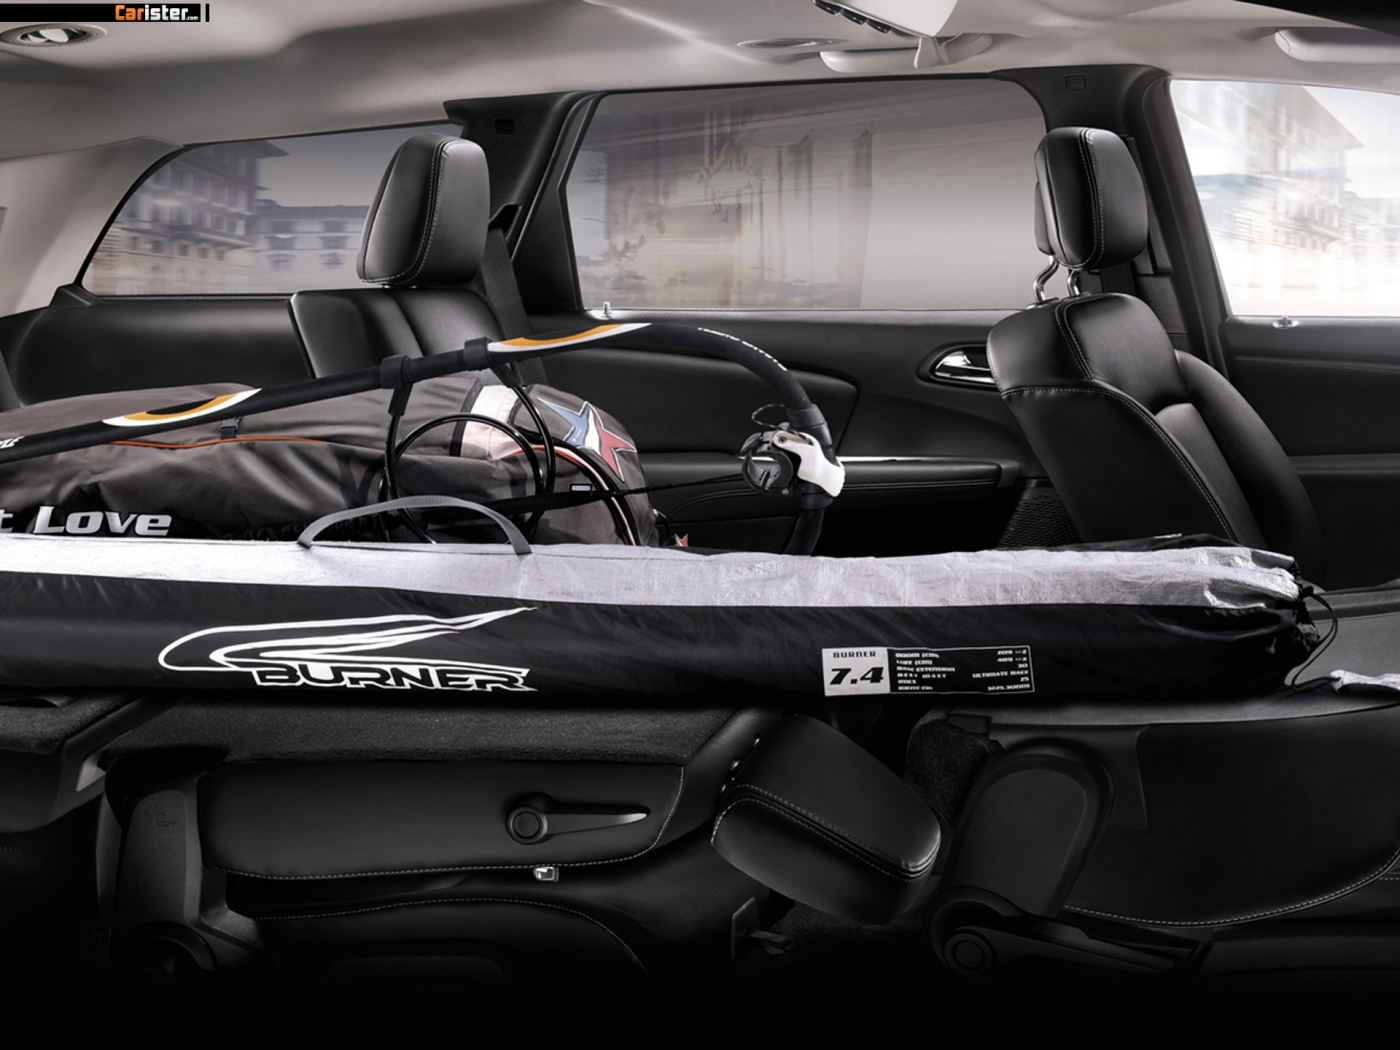 Fiat Freemont AWD 2012 - Photo 49 - Taille: 1400x1050